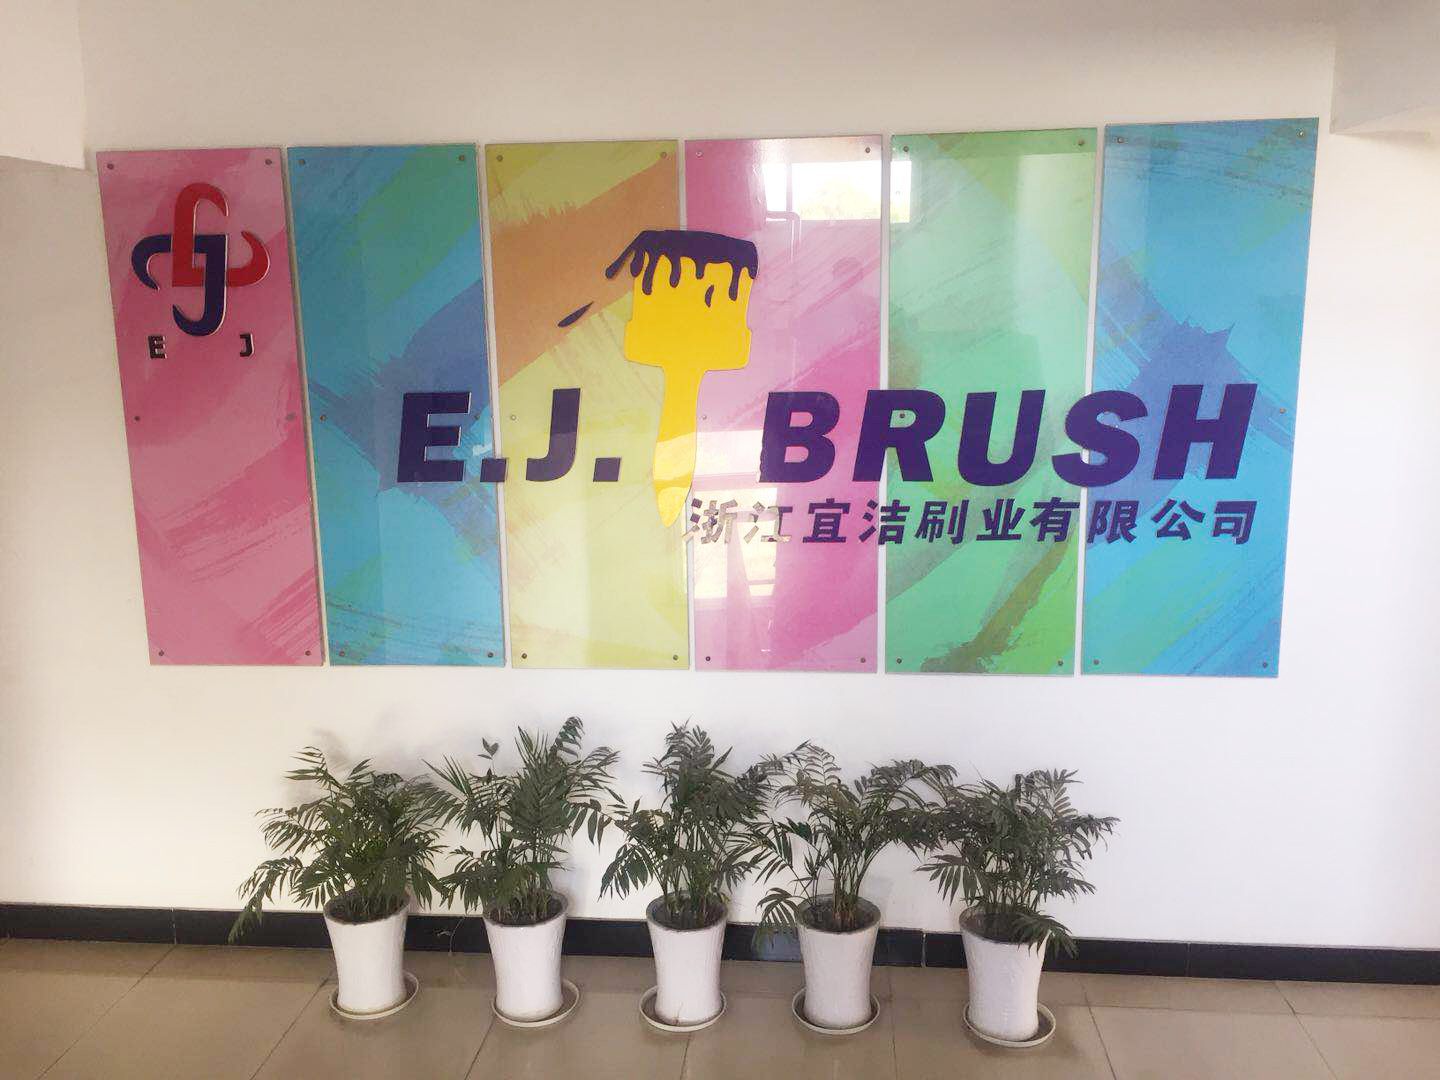 ZHEJIANG E.J.BRUSH IND CO.,LTD. was founded in 1992